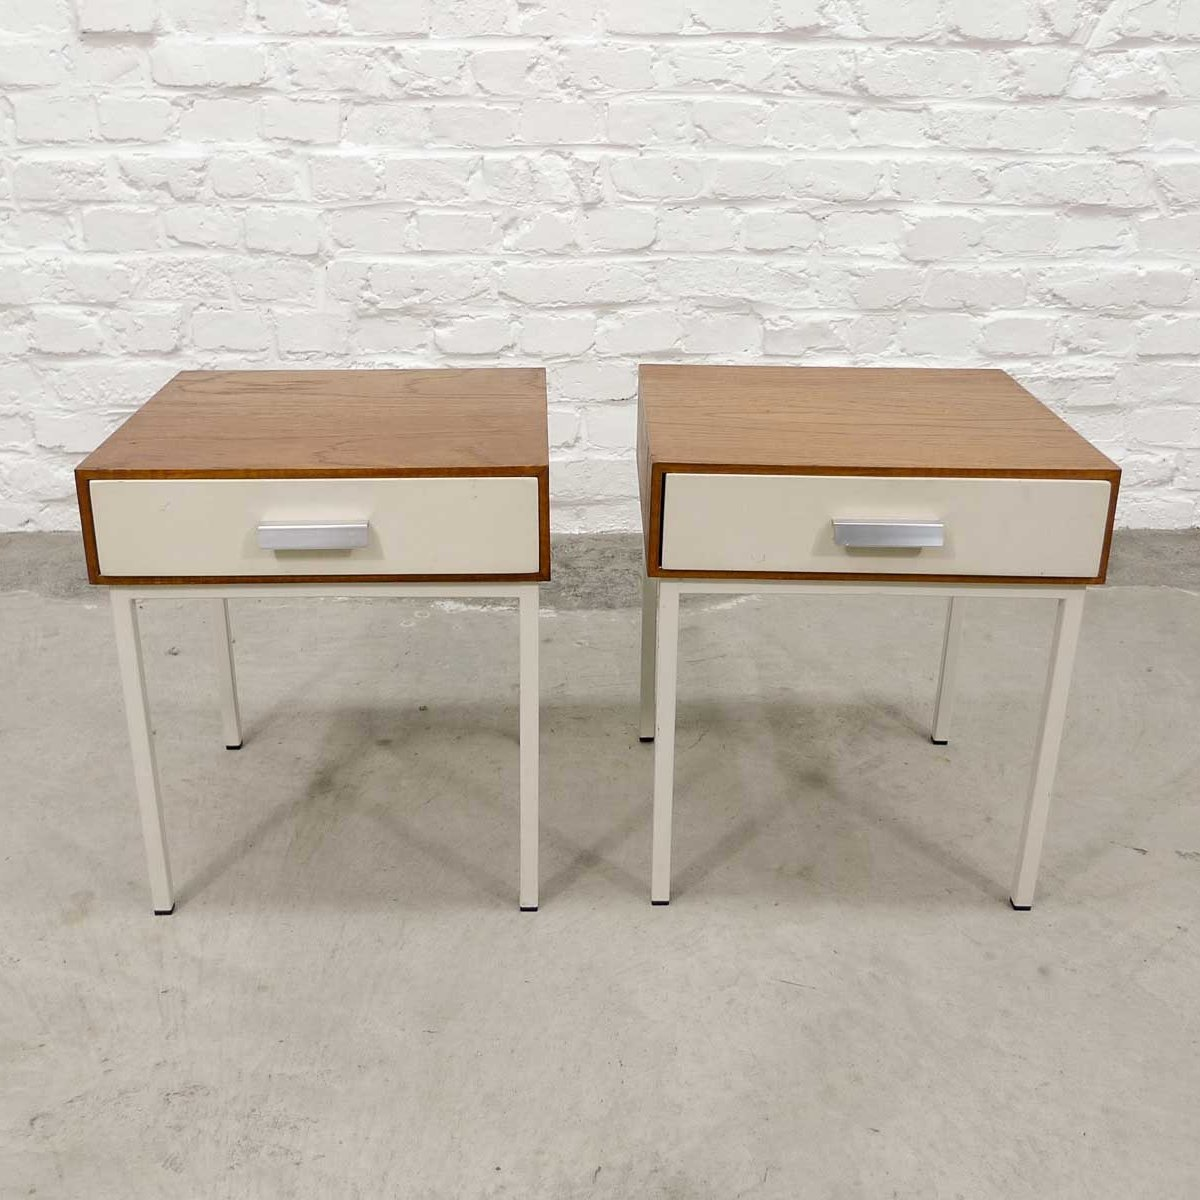 Picture of: Mid Century Pair Of Teak Wood Steel Bed Side Tables With White Drawer 1960s 78082